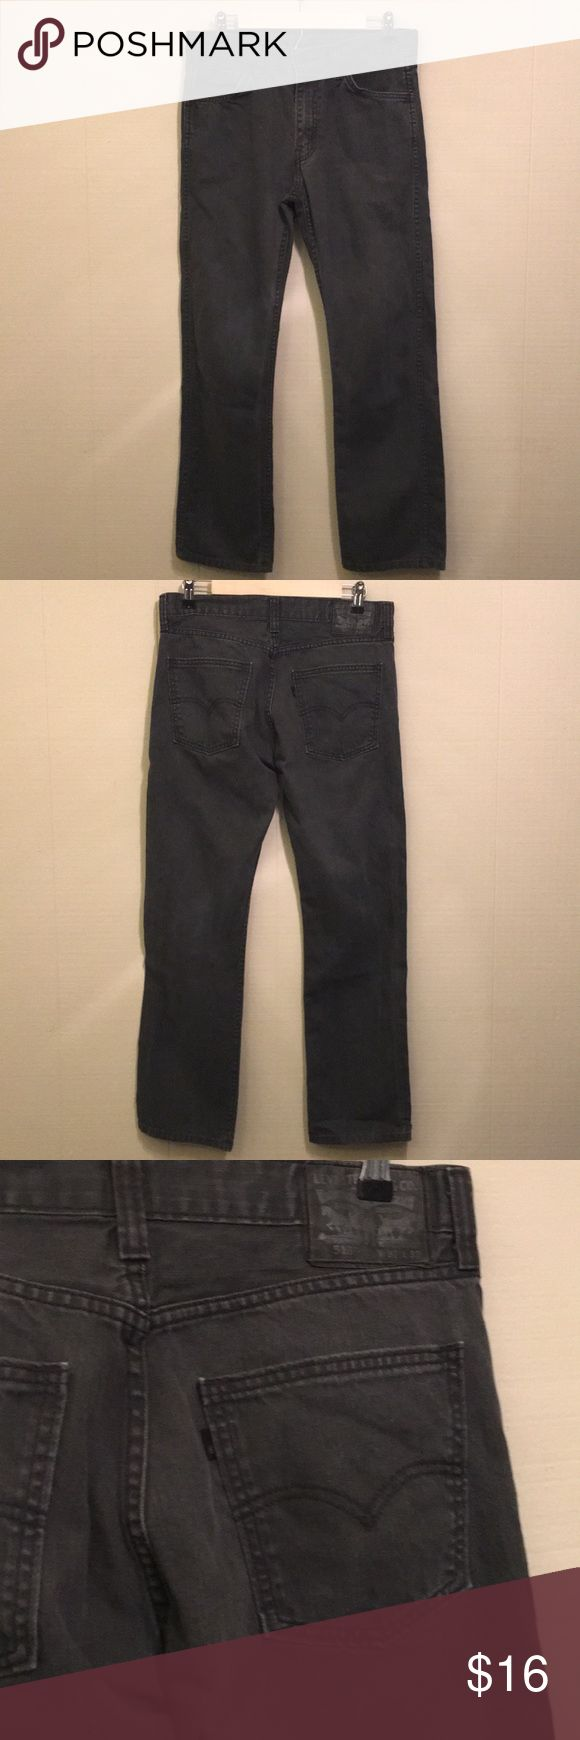 Men's Levi's 513 Classic Straight 513 Levi's Classic Straight  Waist: 32  Length: 32  Pre-owned: Good condition with a light Norman light wear Levi's Pants